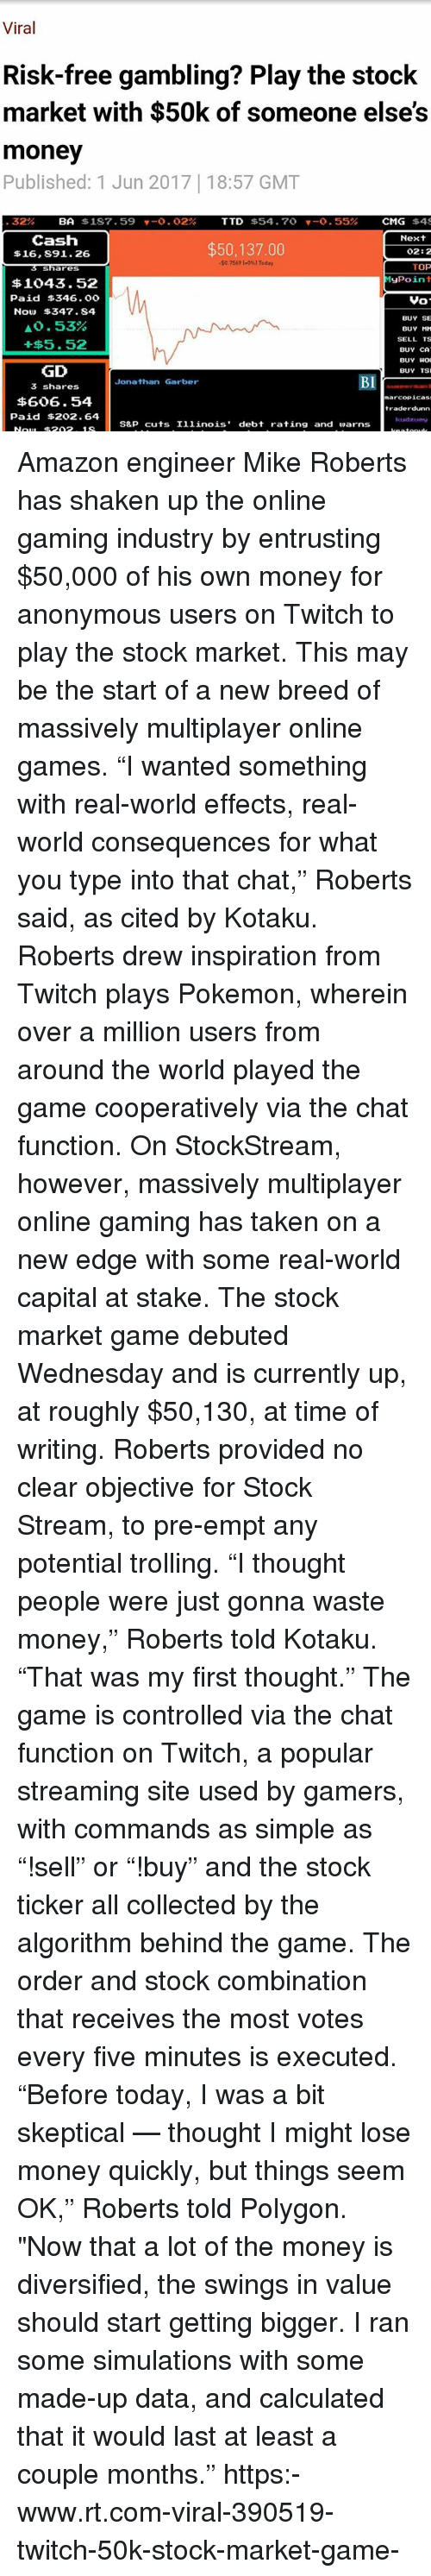 Are you investing or gambling